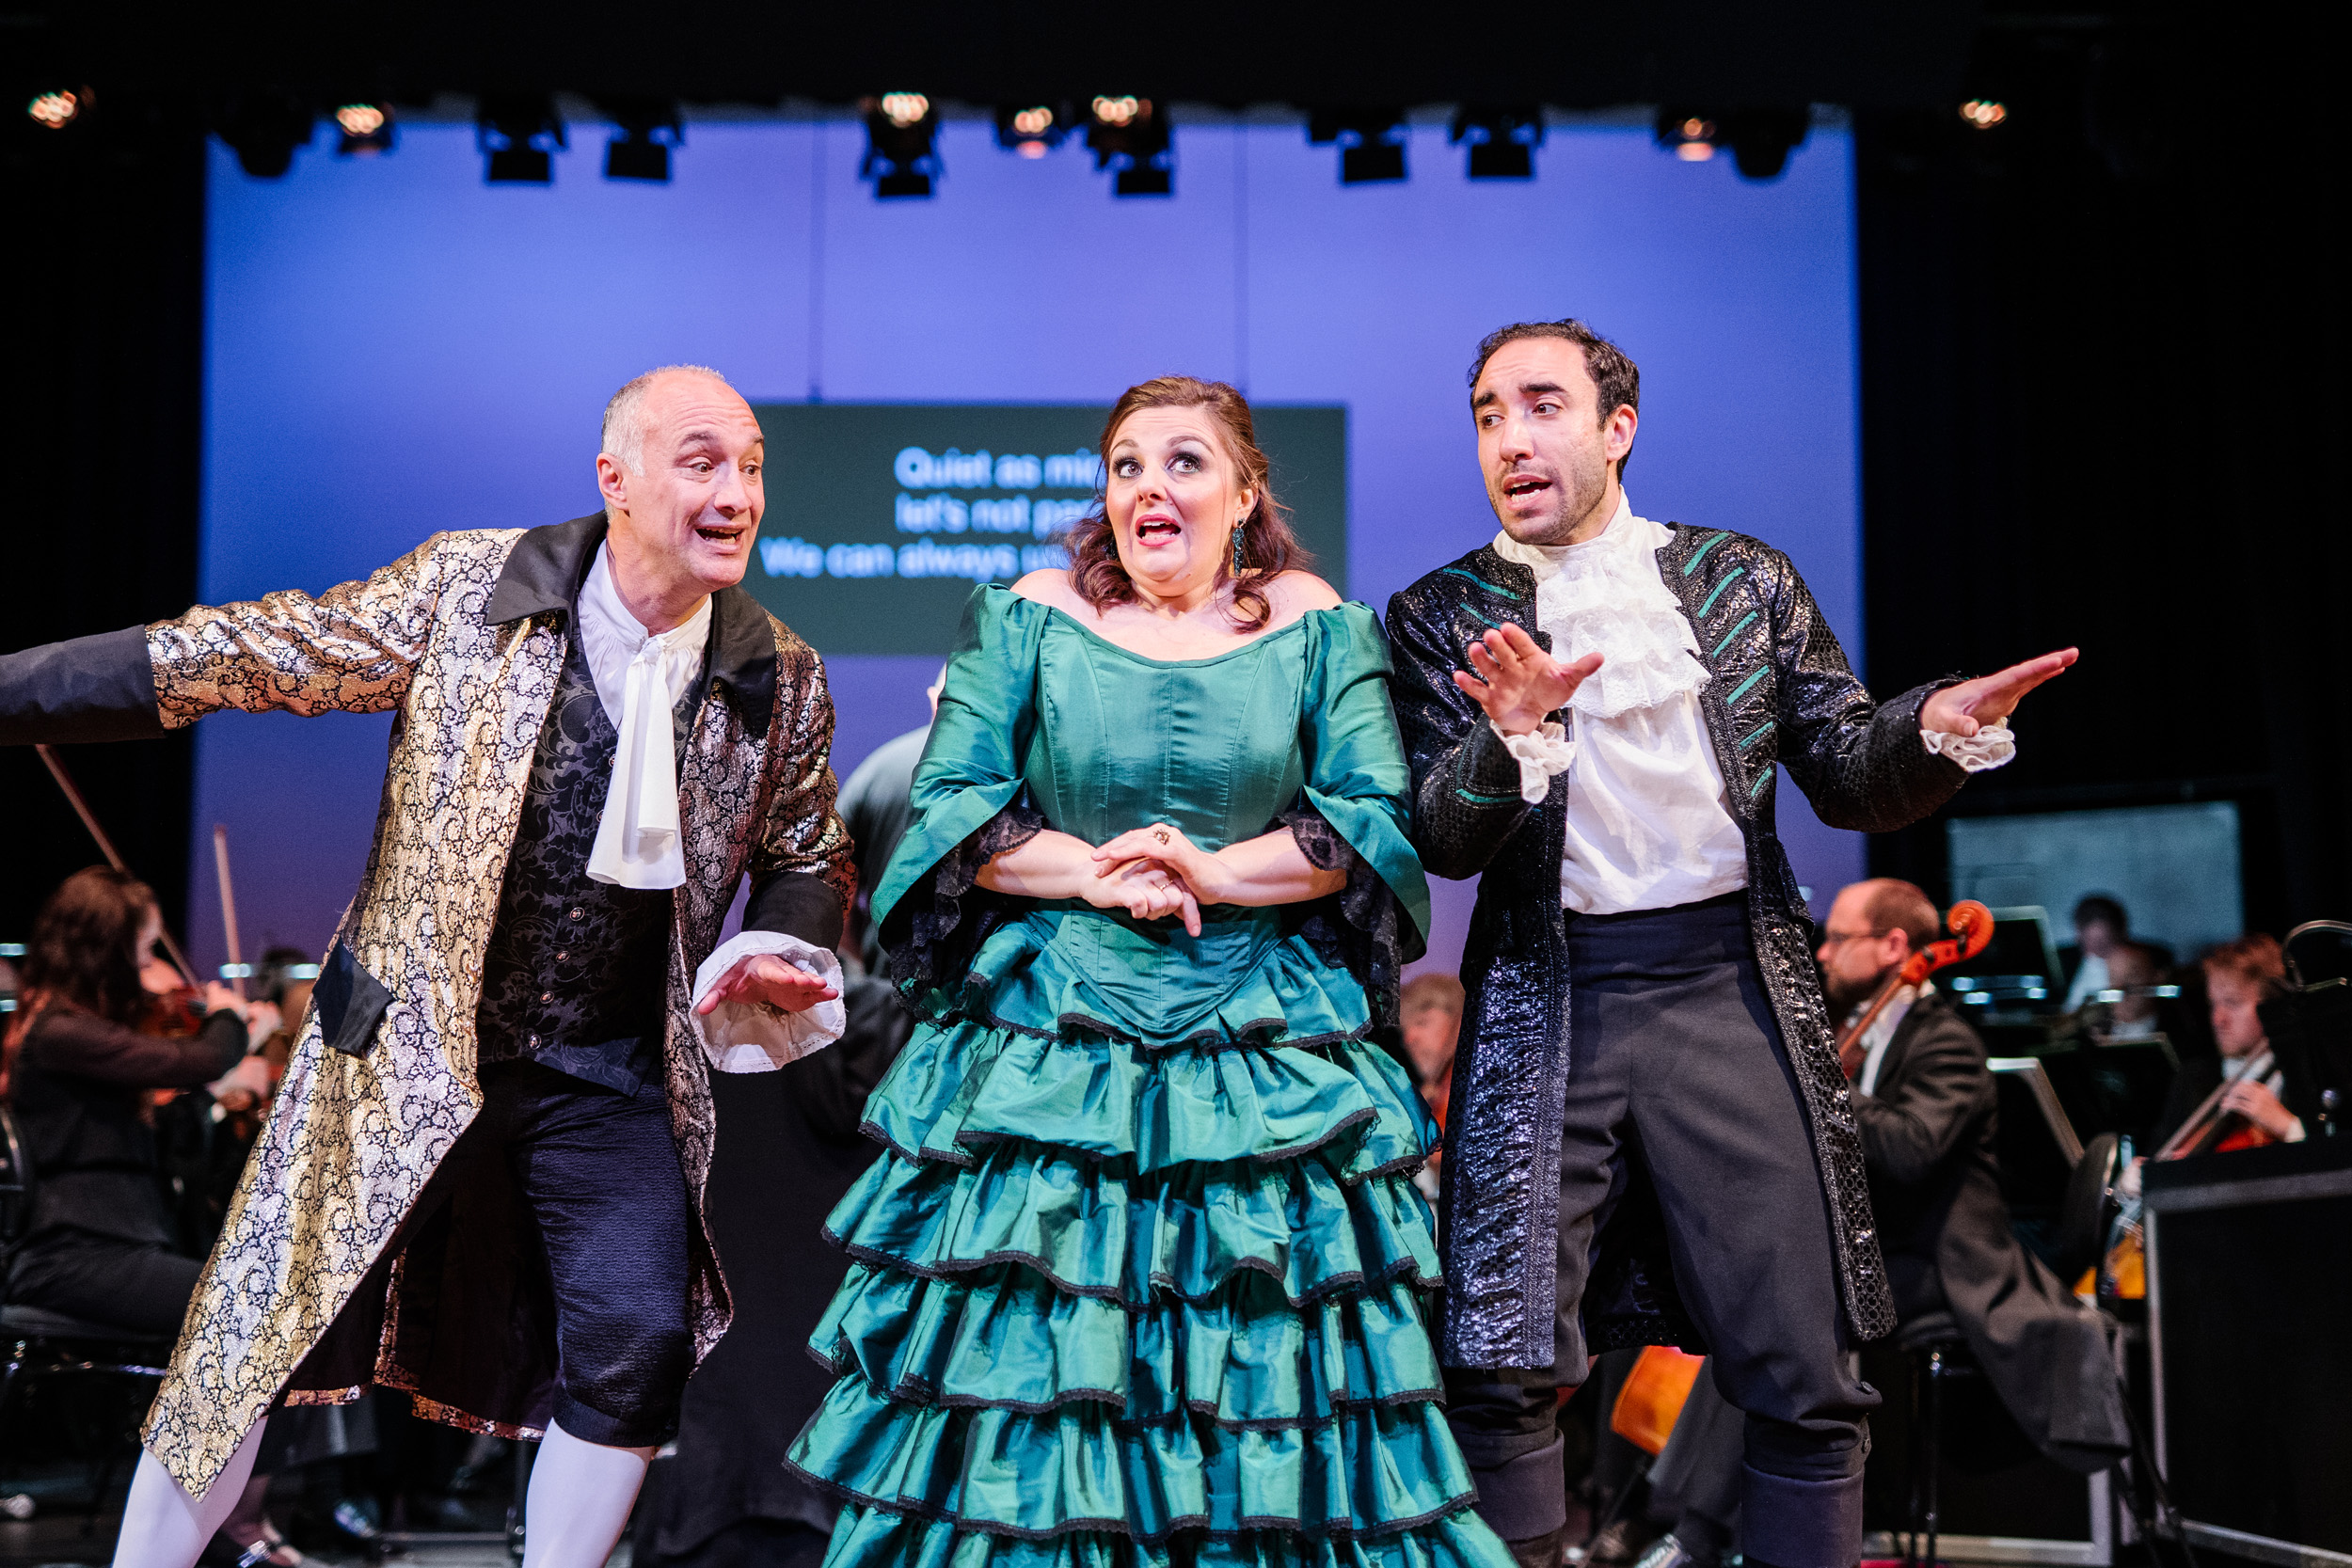 Review: The Barber Of Seville